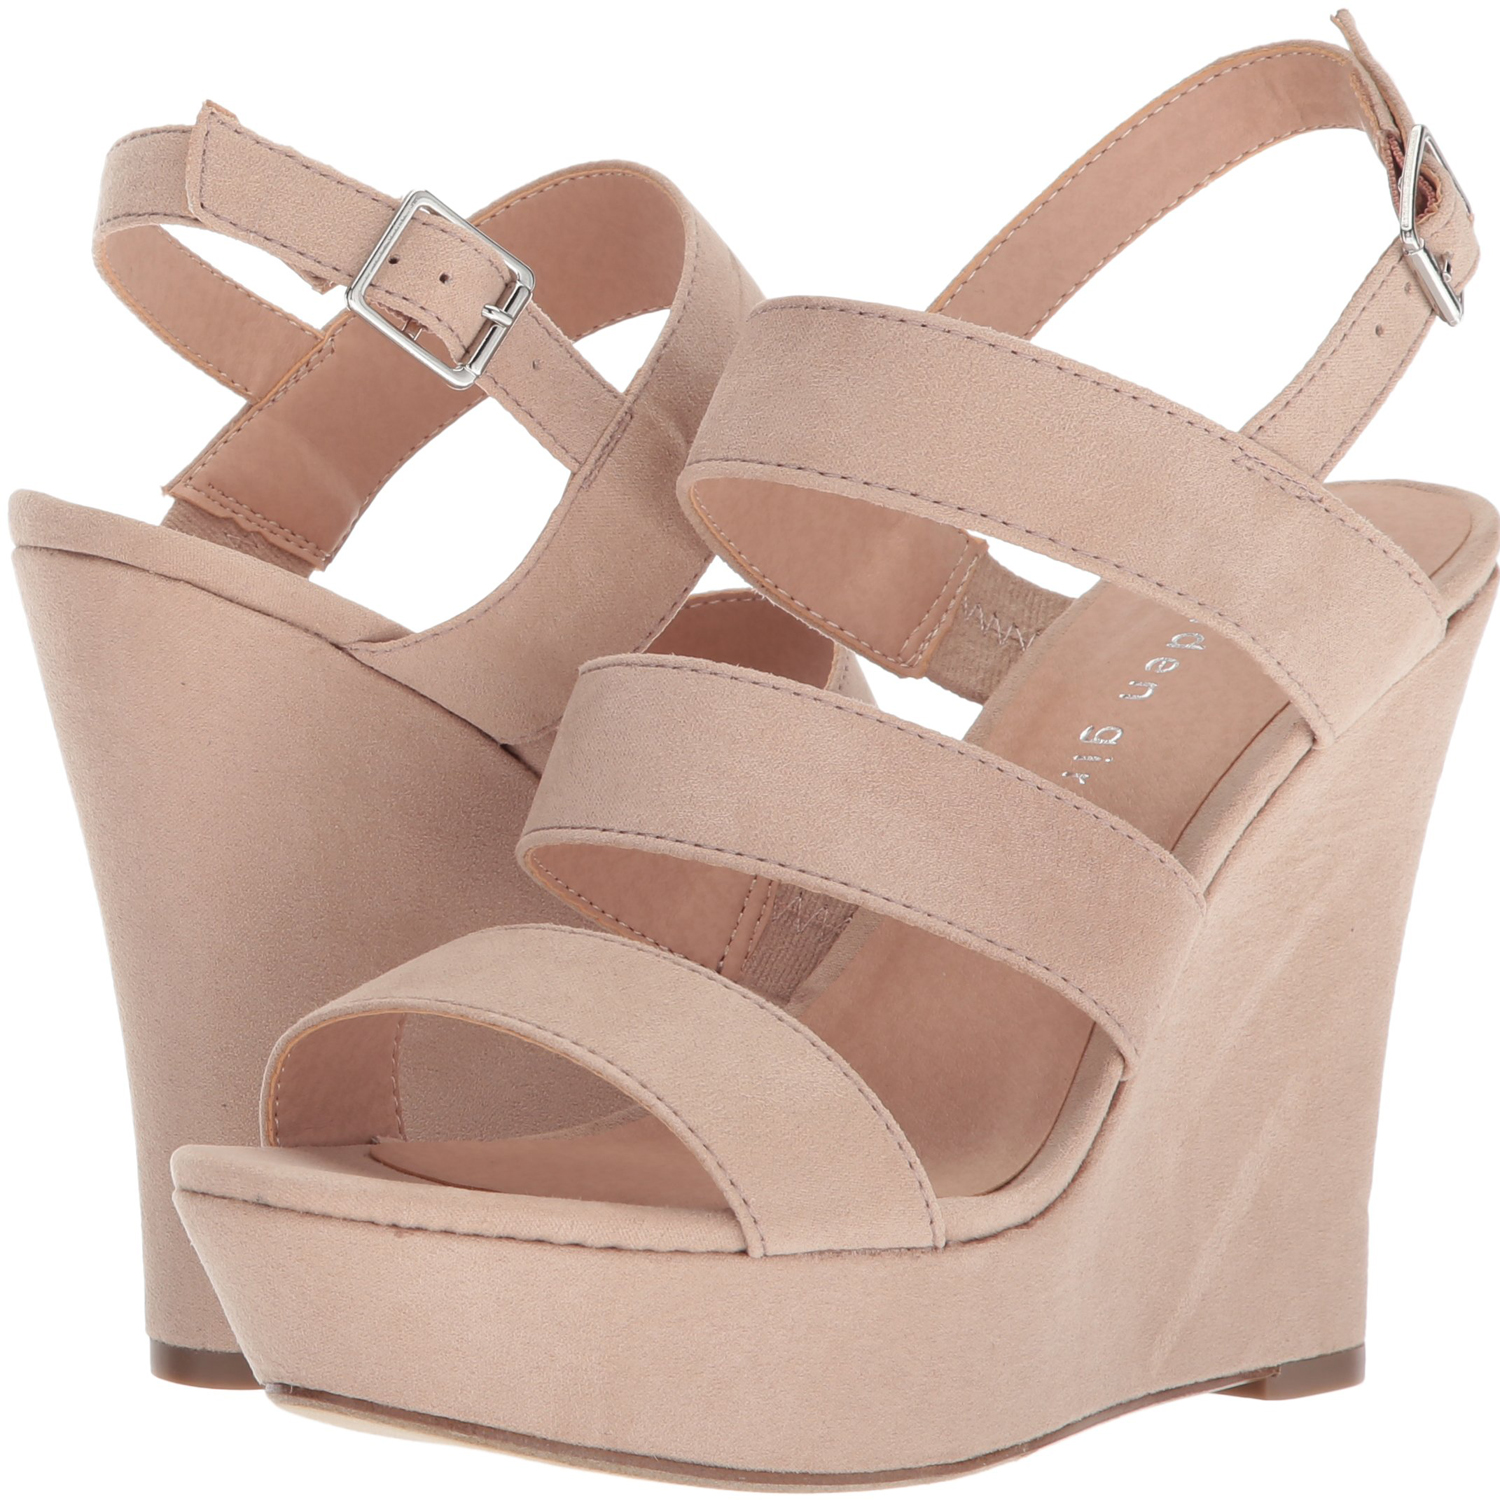 0d7807b5c Add some height to your look while remaining comfortable in the Madden Girl  blenda wedge sandal. These wedges feature an ankle strap with buckle  closure and ...